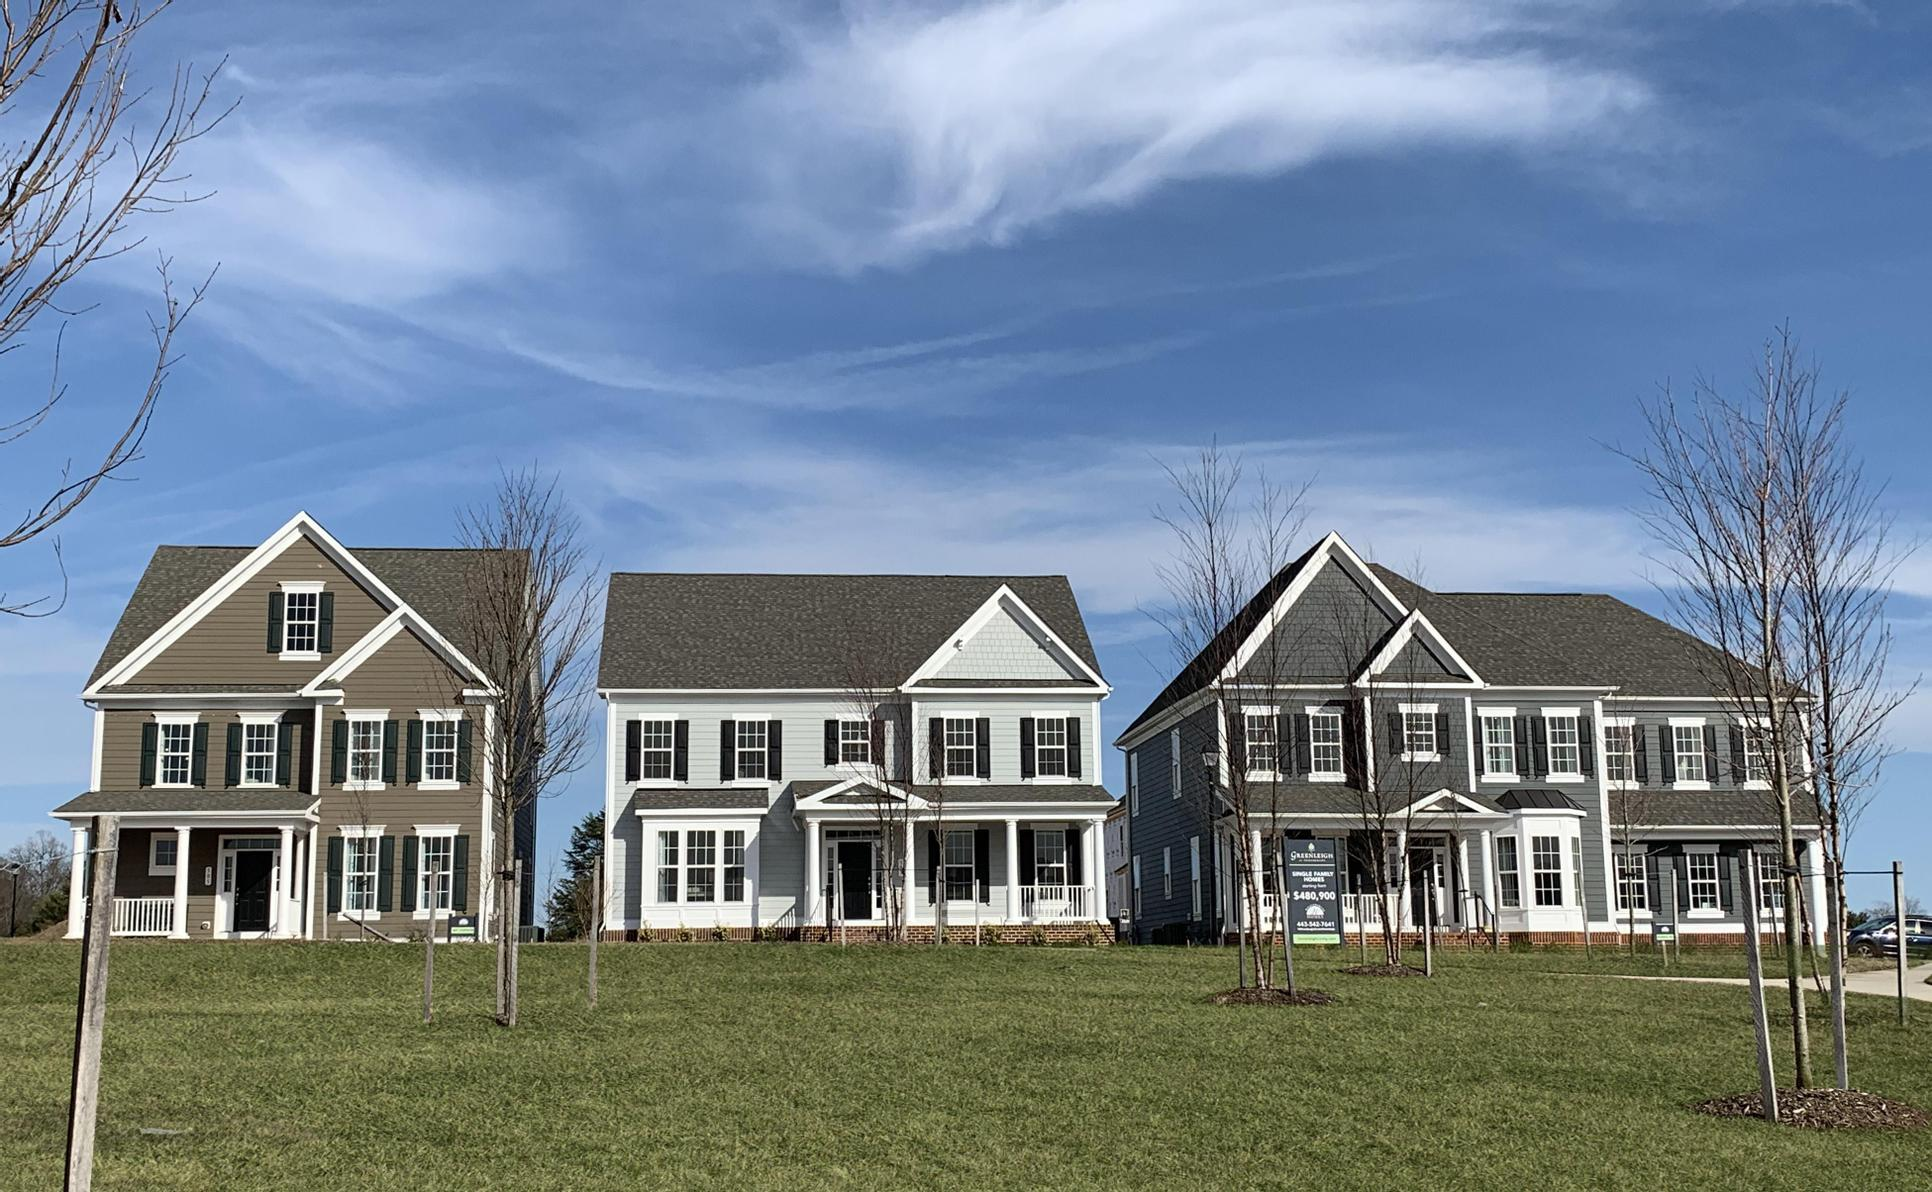 Greenleigh at Crossroads:Williamsburg Homes Manor, Cottage and Villa Homes